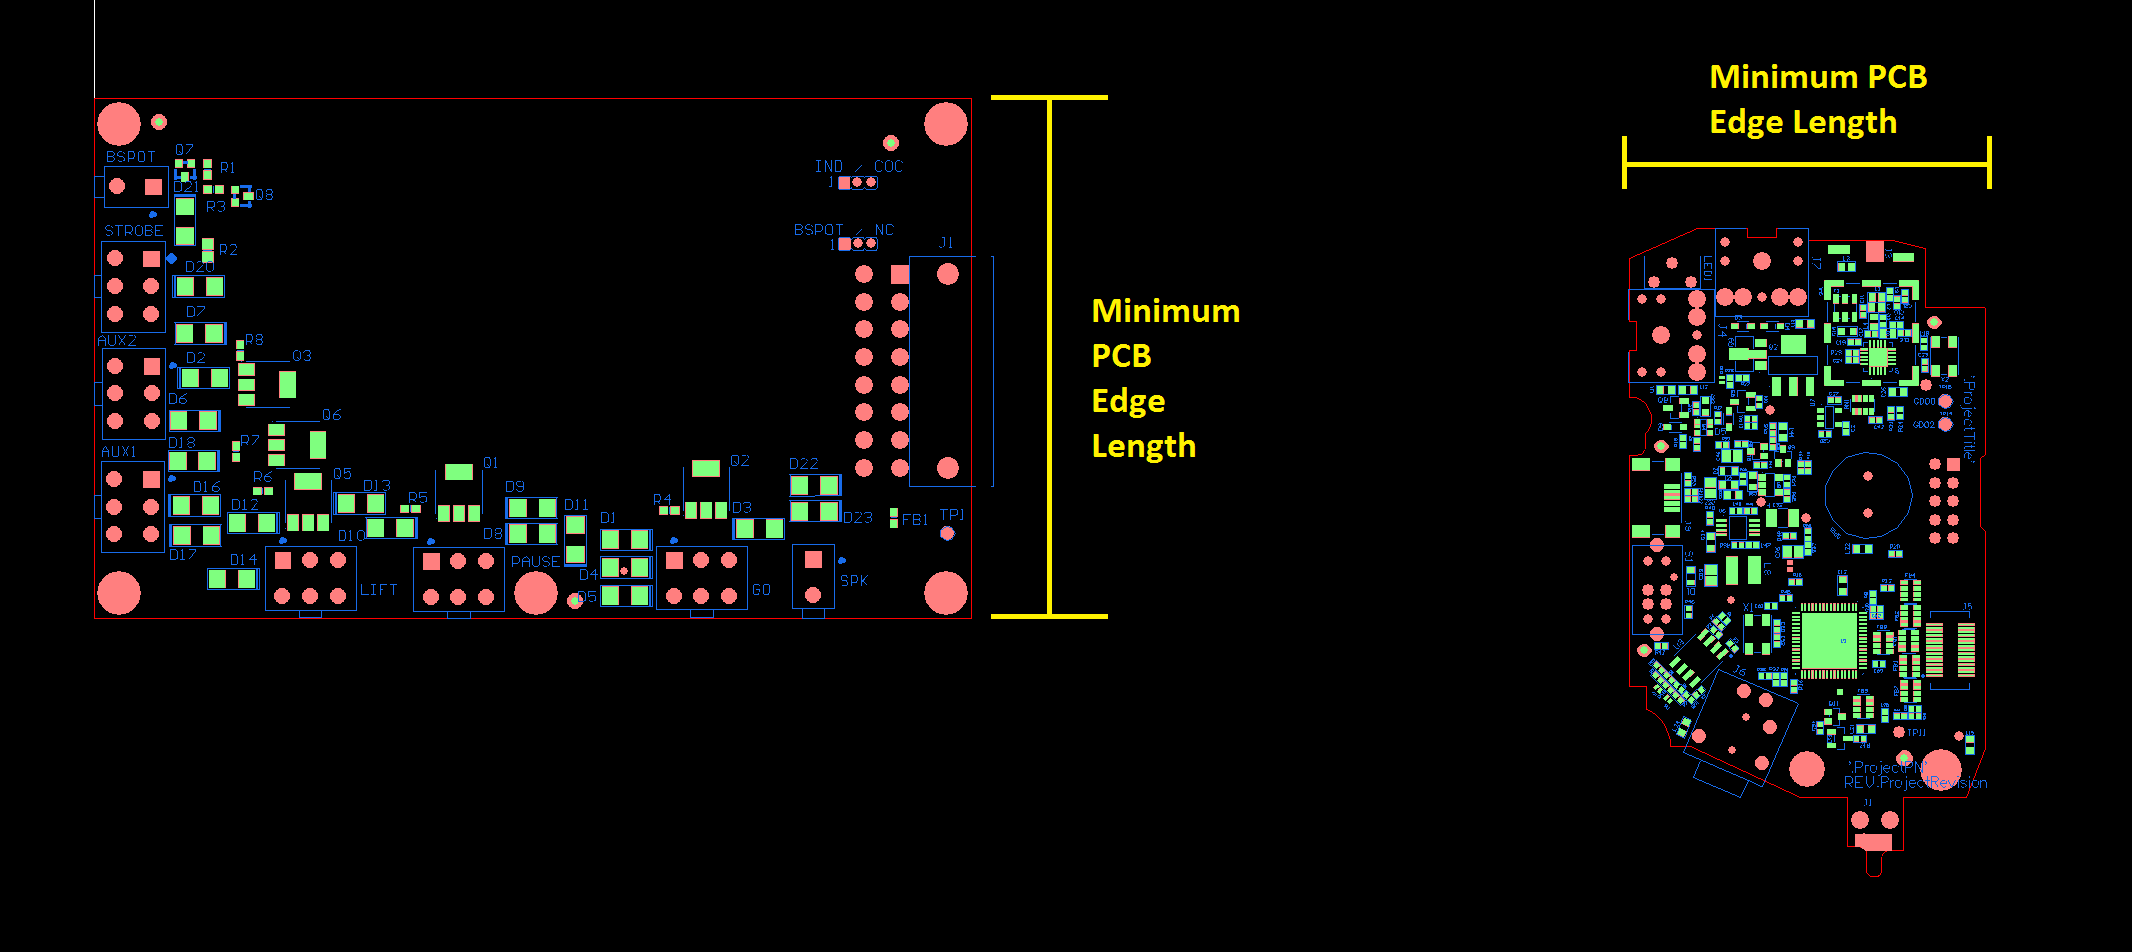 """This image helps to define what we refer to as the """"Minimum PCB Edge Length"""""""